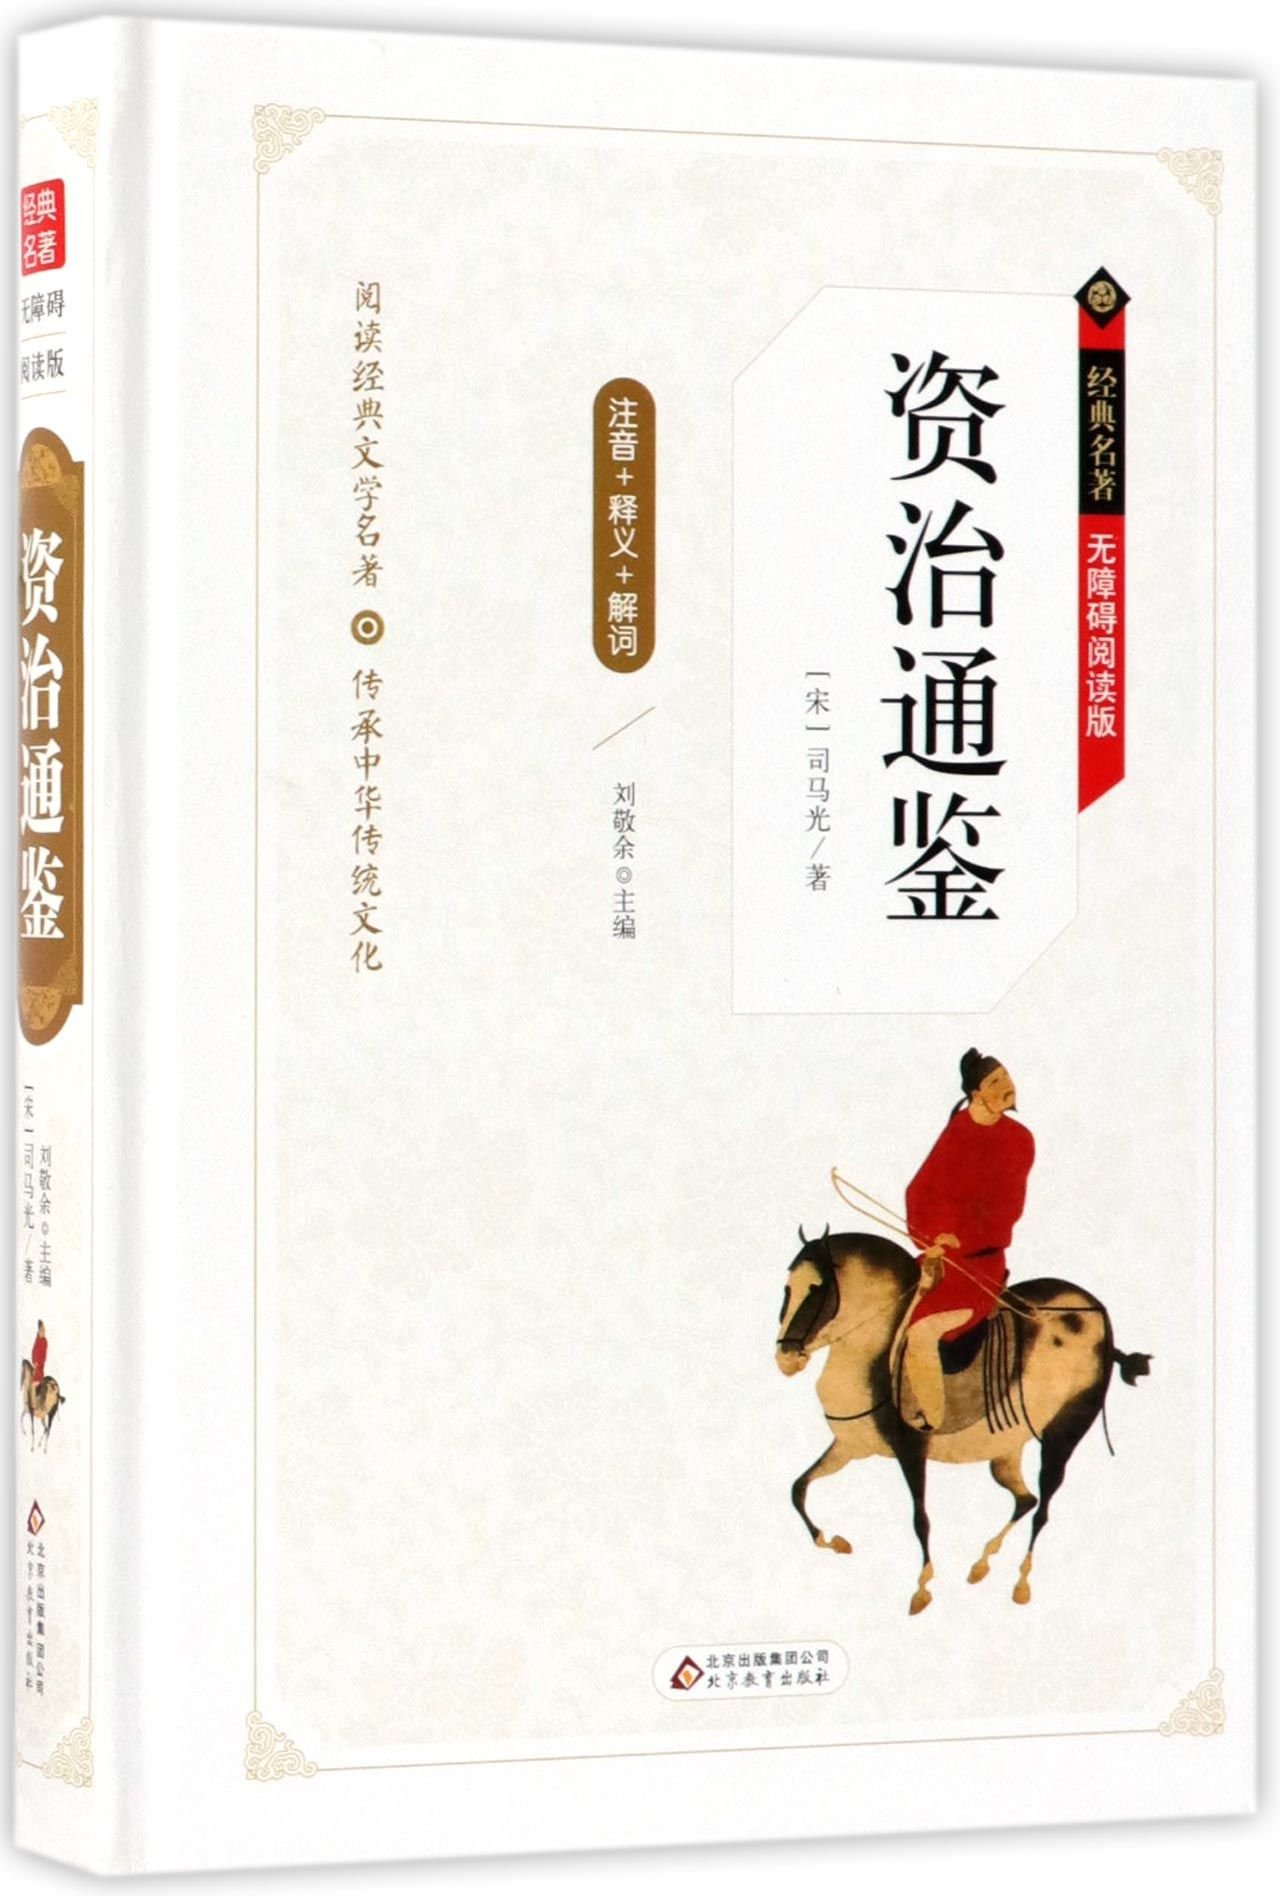 History as a Mirror (Accessible Reading Version) (Chinese Edition) pdf